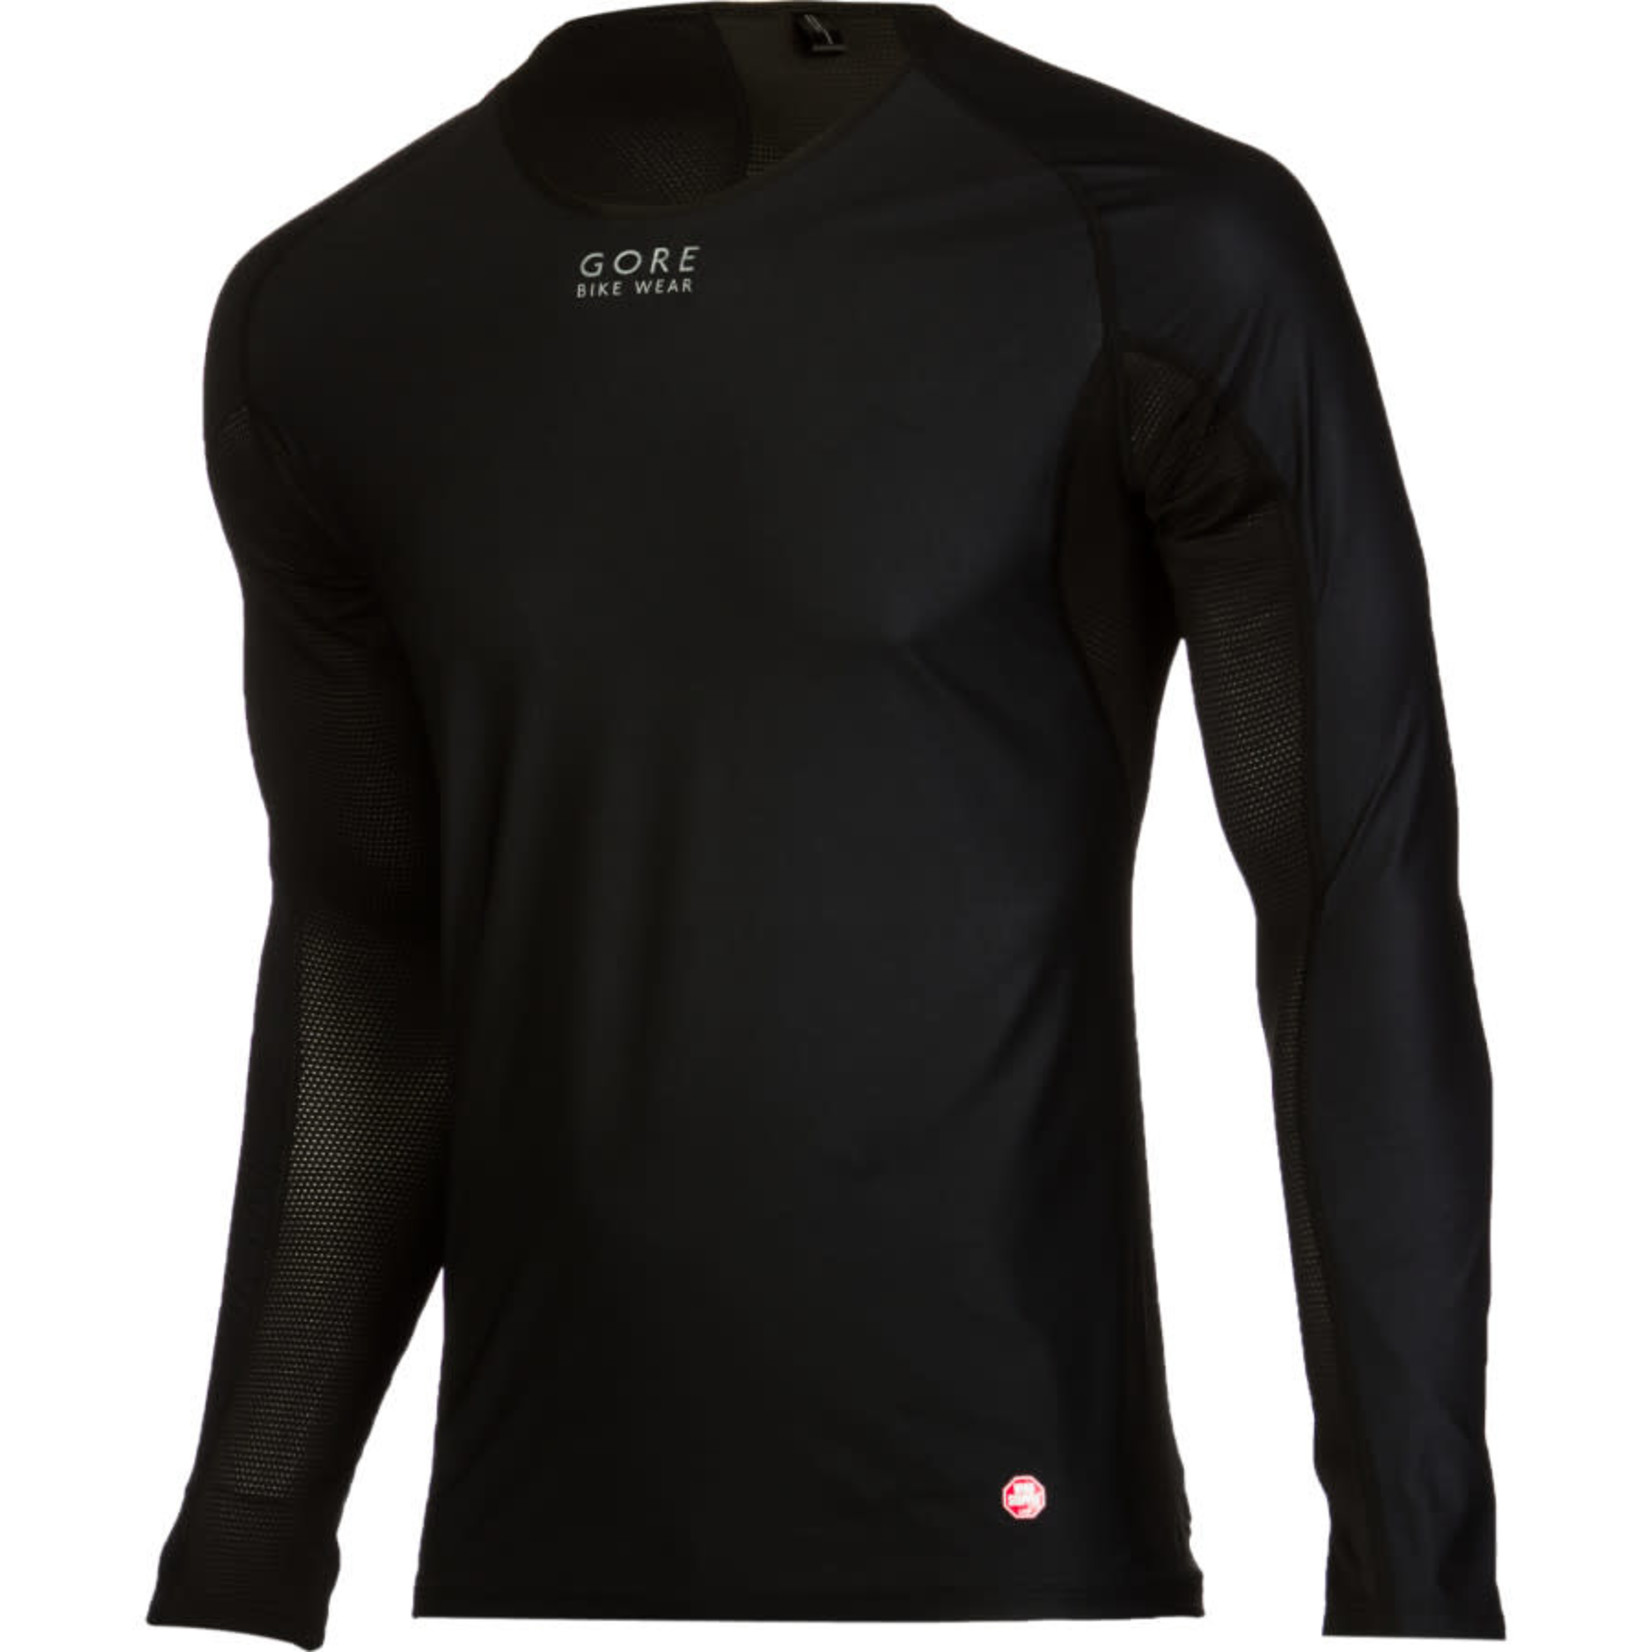 GORE Wear GORE Base Layer Thermo Long Sleeve